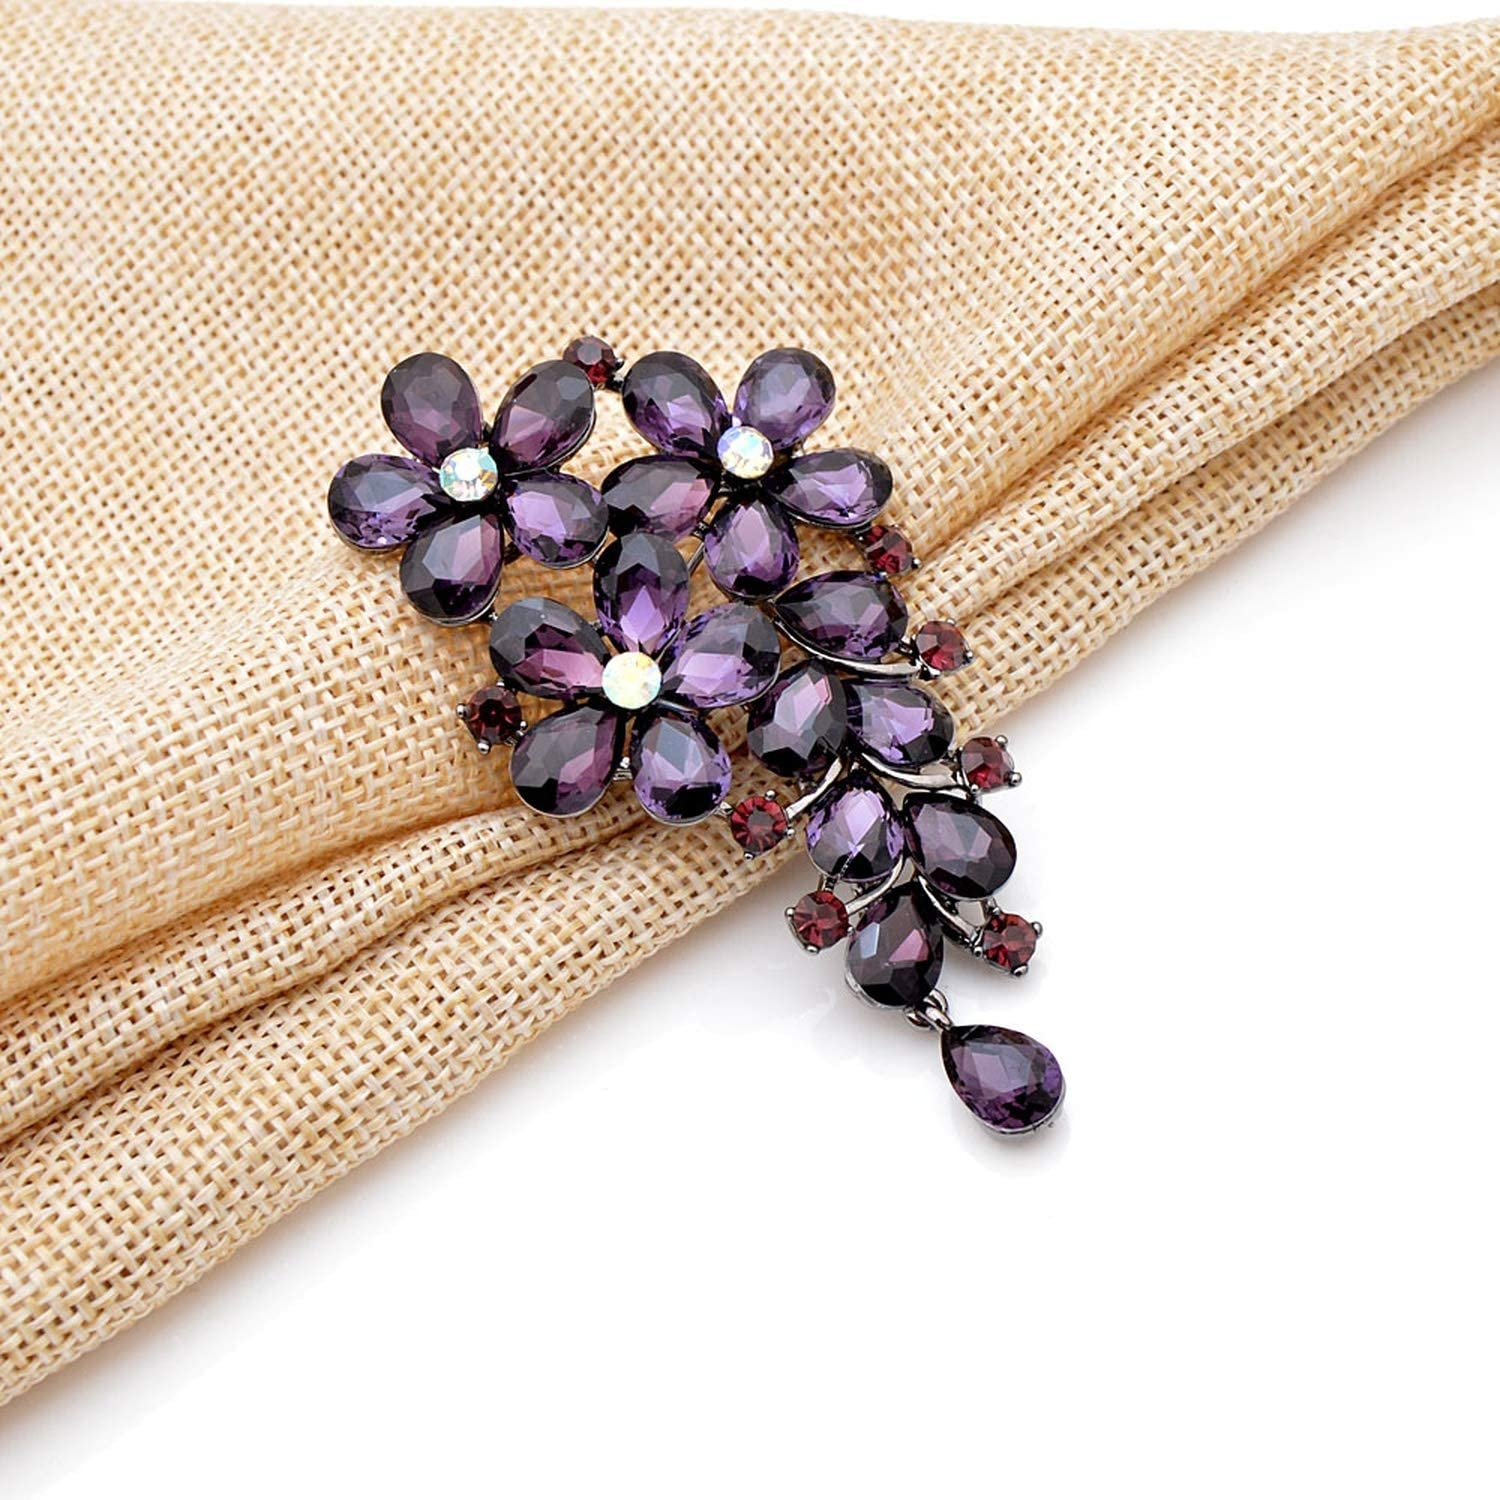 Minusone Brooch Pins-Purple Color Crystal Flower Large Brooches Autumn Coat Brooch Pin Jewelry New